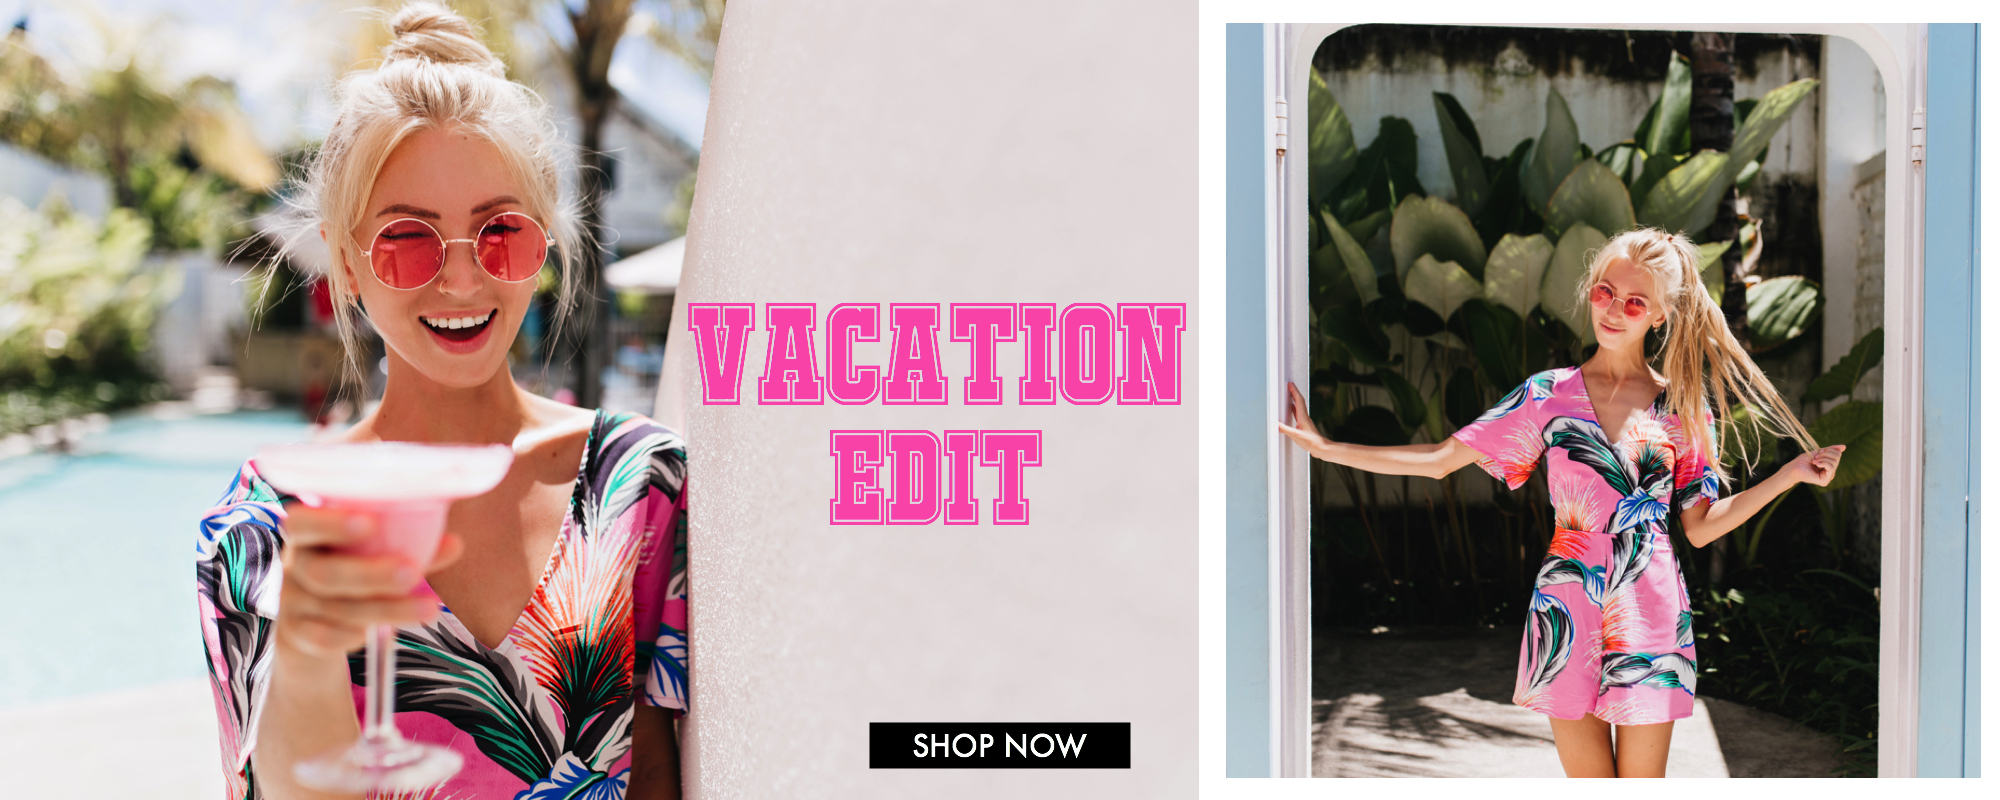 The Vacation Edit